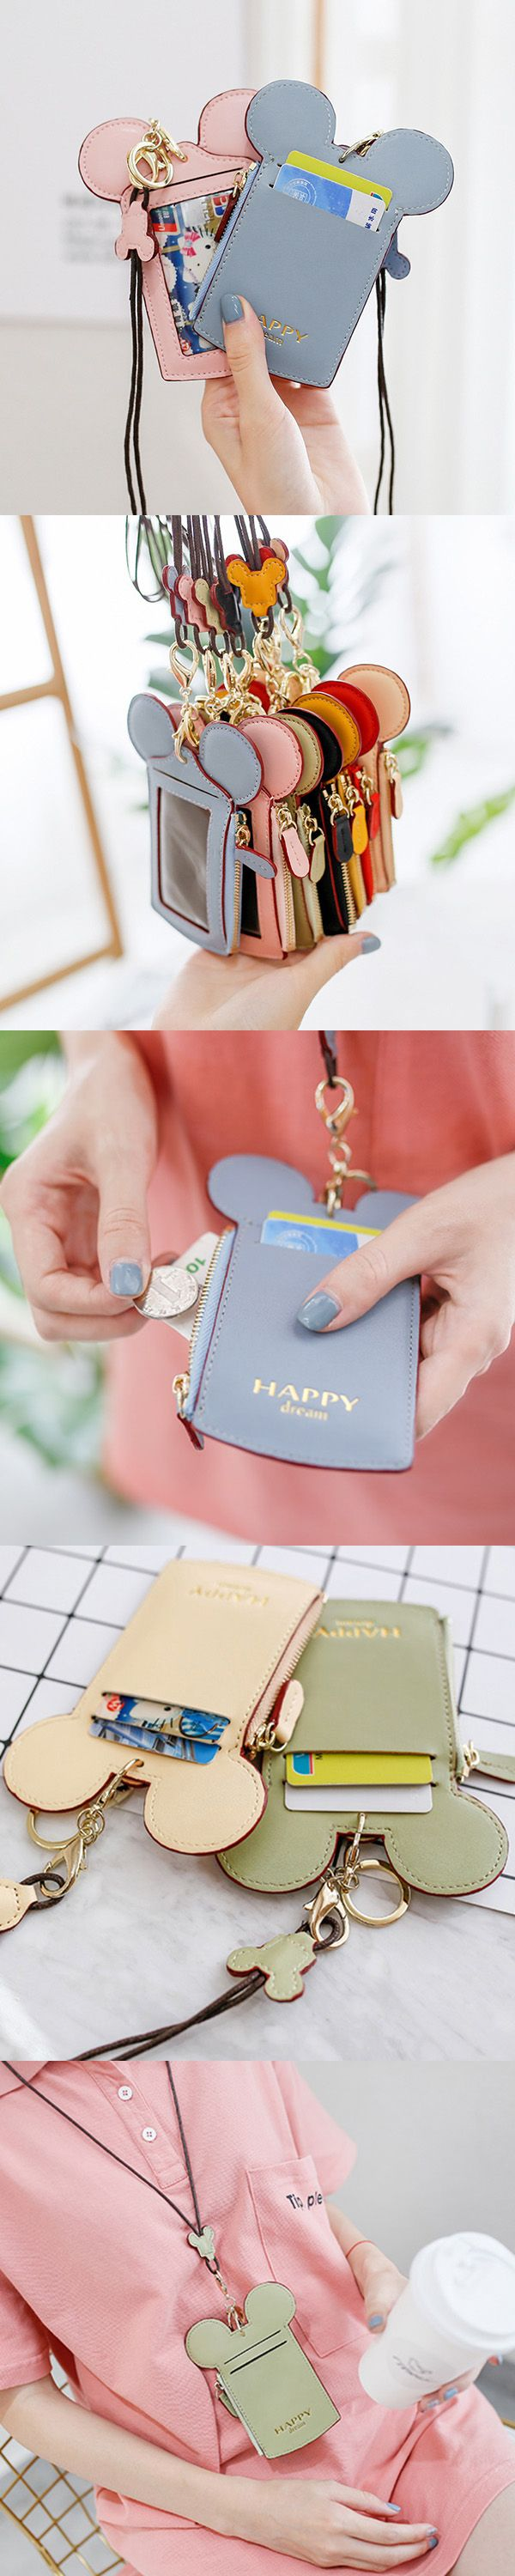 【2 / US$15.98】Women Cute Animal Shape Card Holder Wallet Purse Neck Bag